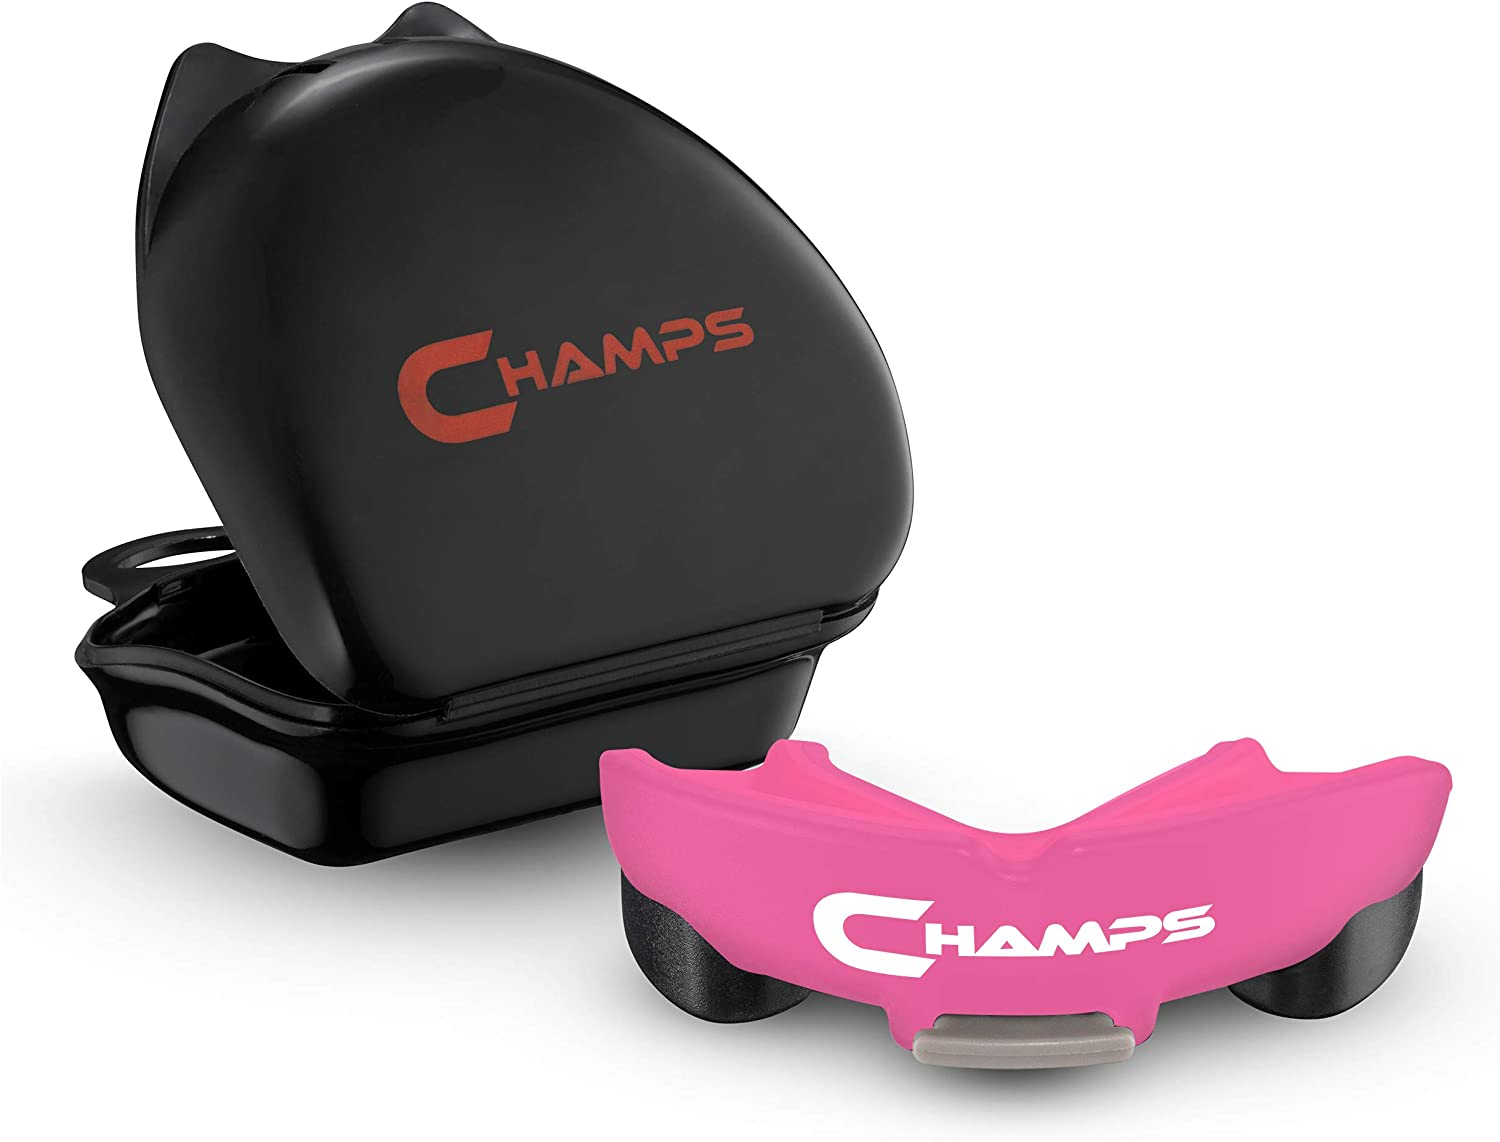 Champs Breathable Mouthguard for Boxing, Jiu Jitsu, MMA, Rugby, Muay Thai, Sports, and Wrestling